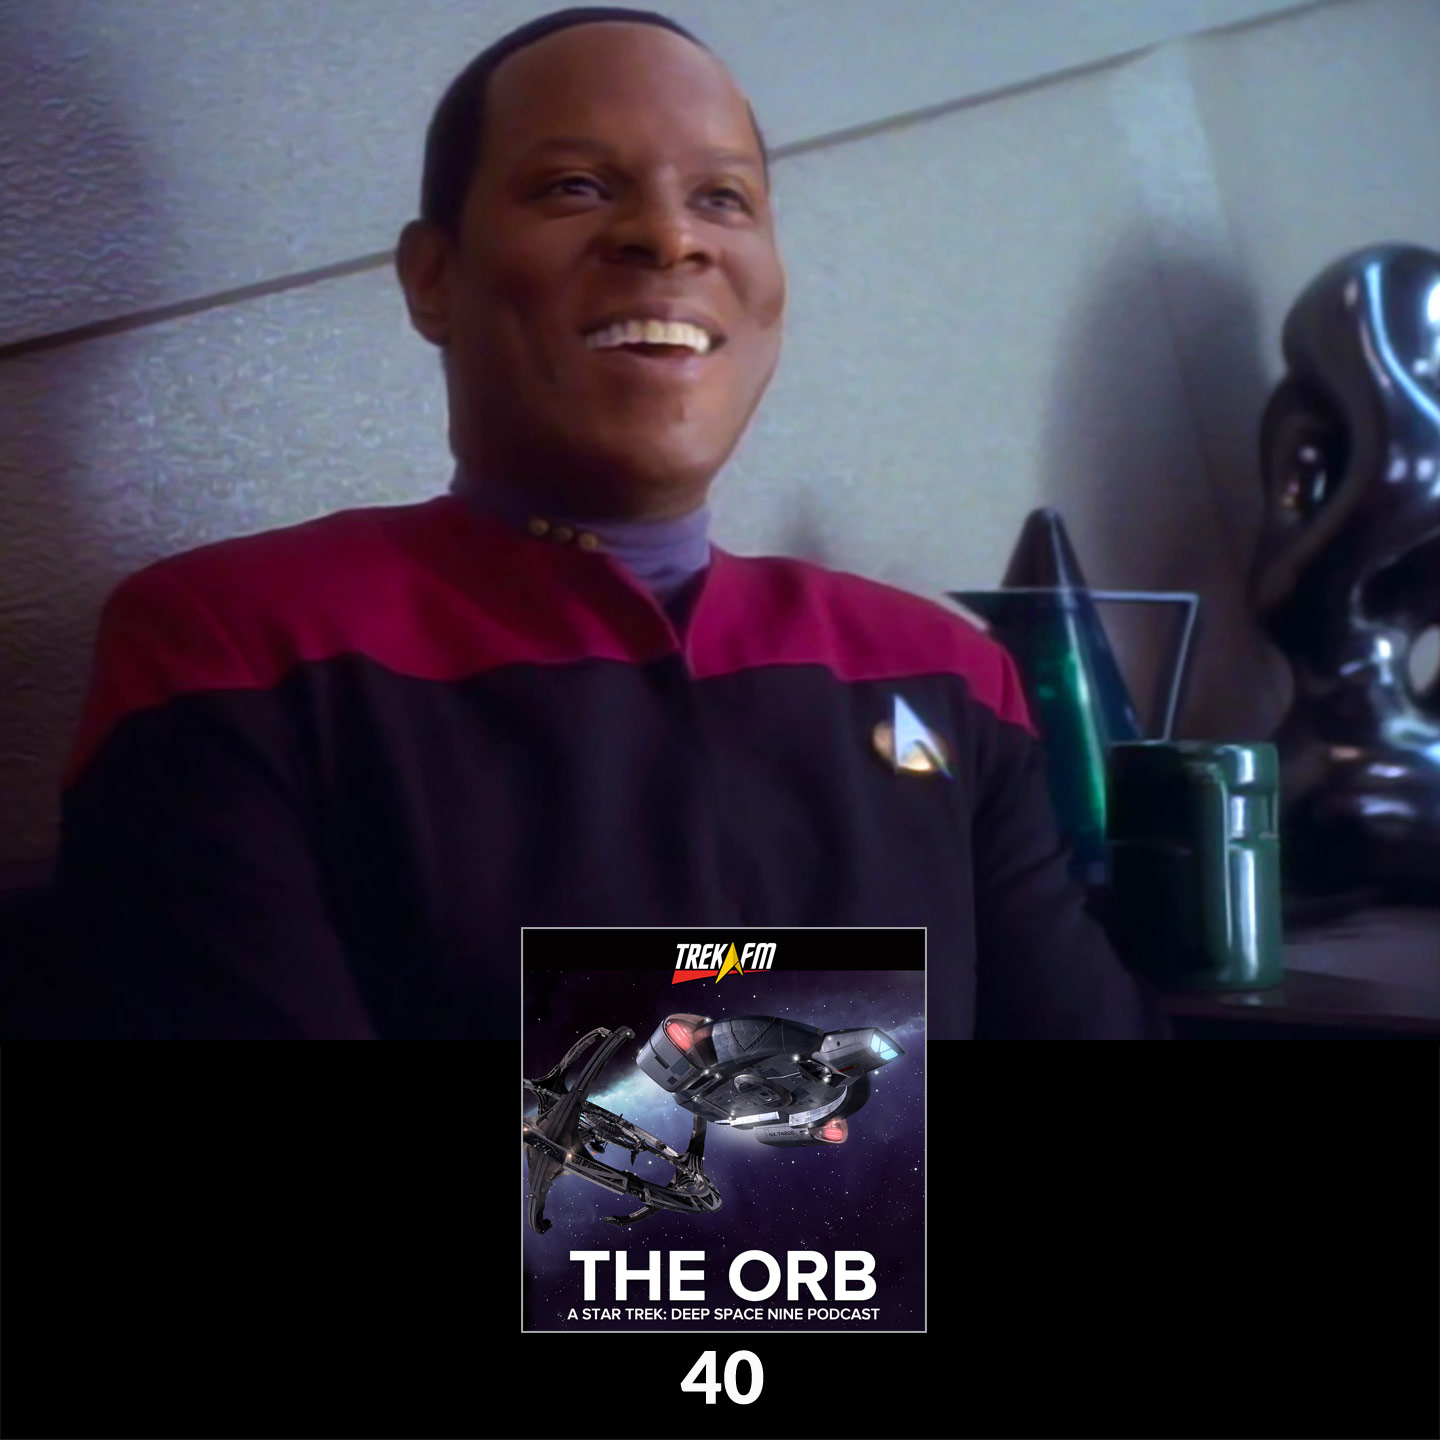 The Orb 40: Commanders Have All the Fun